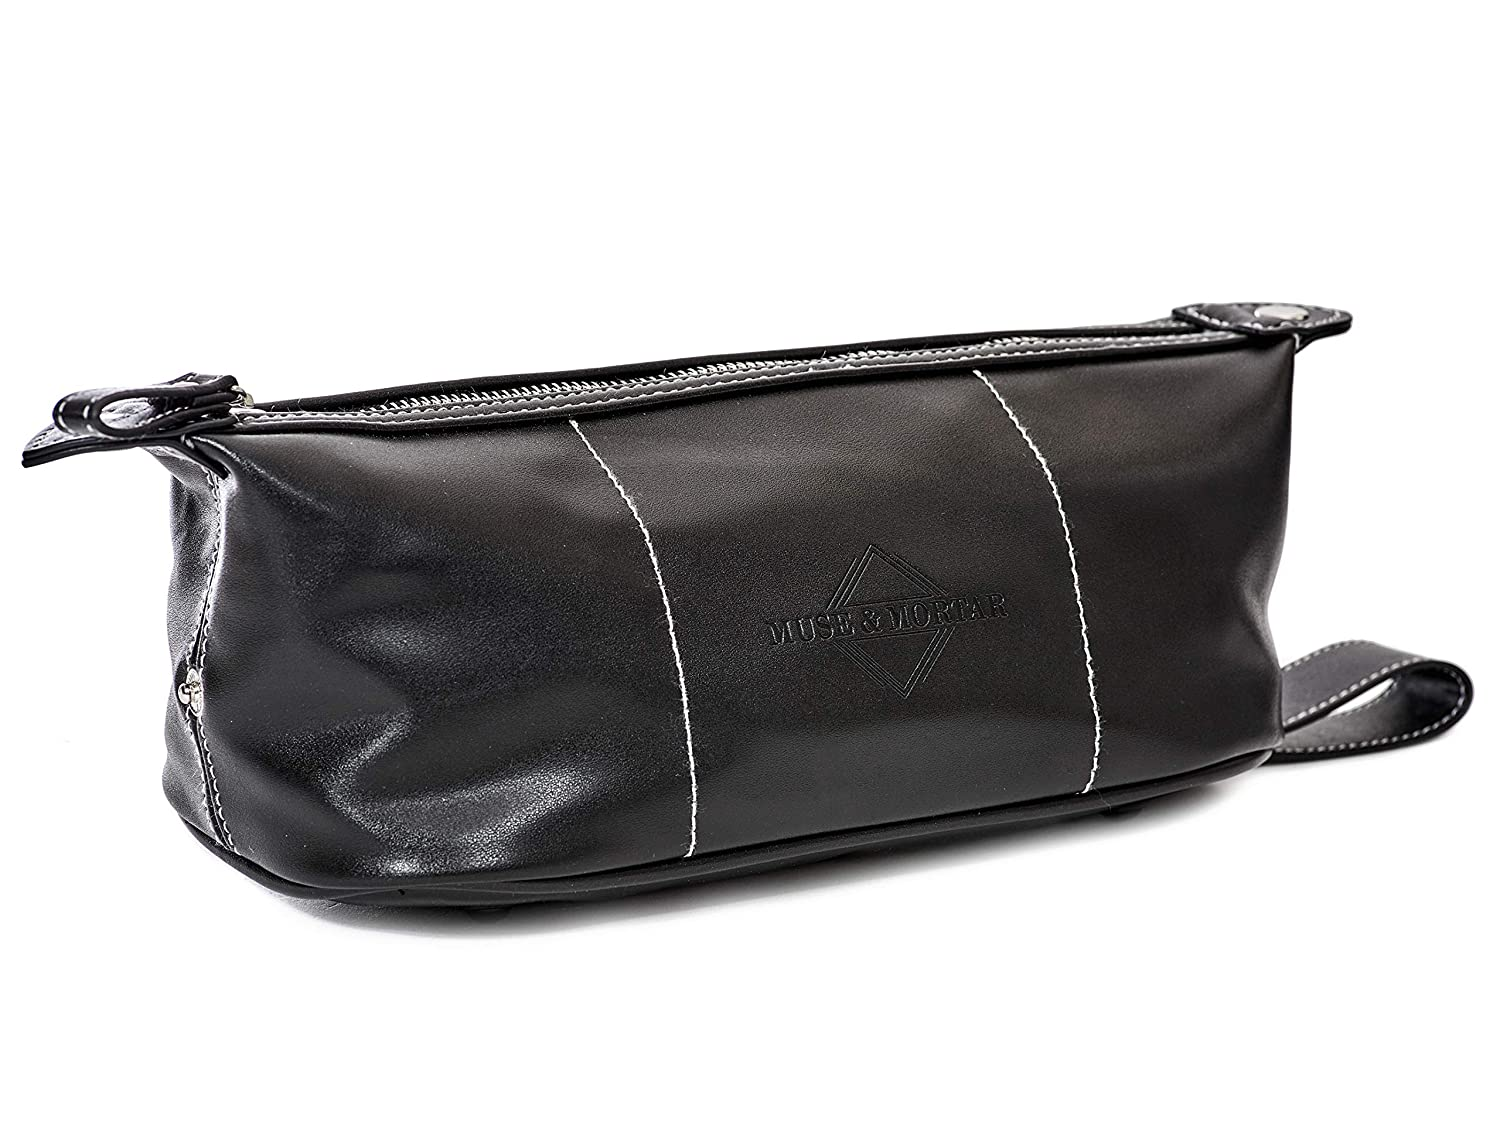 Travel Kit for Men, Toiletry Travel Bag, and Dopp Kit. The best gift and travel accessory.